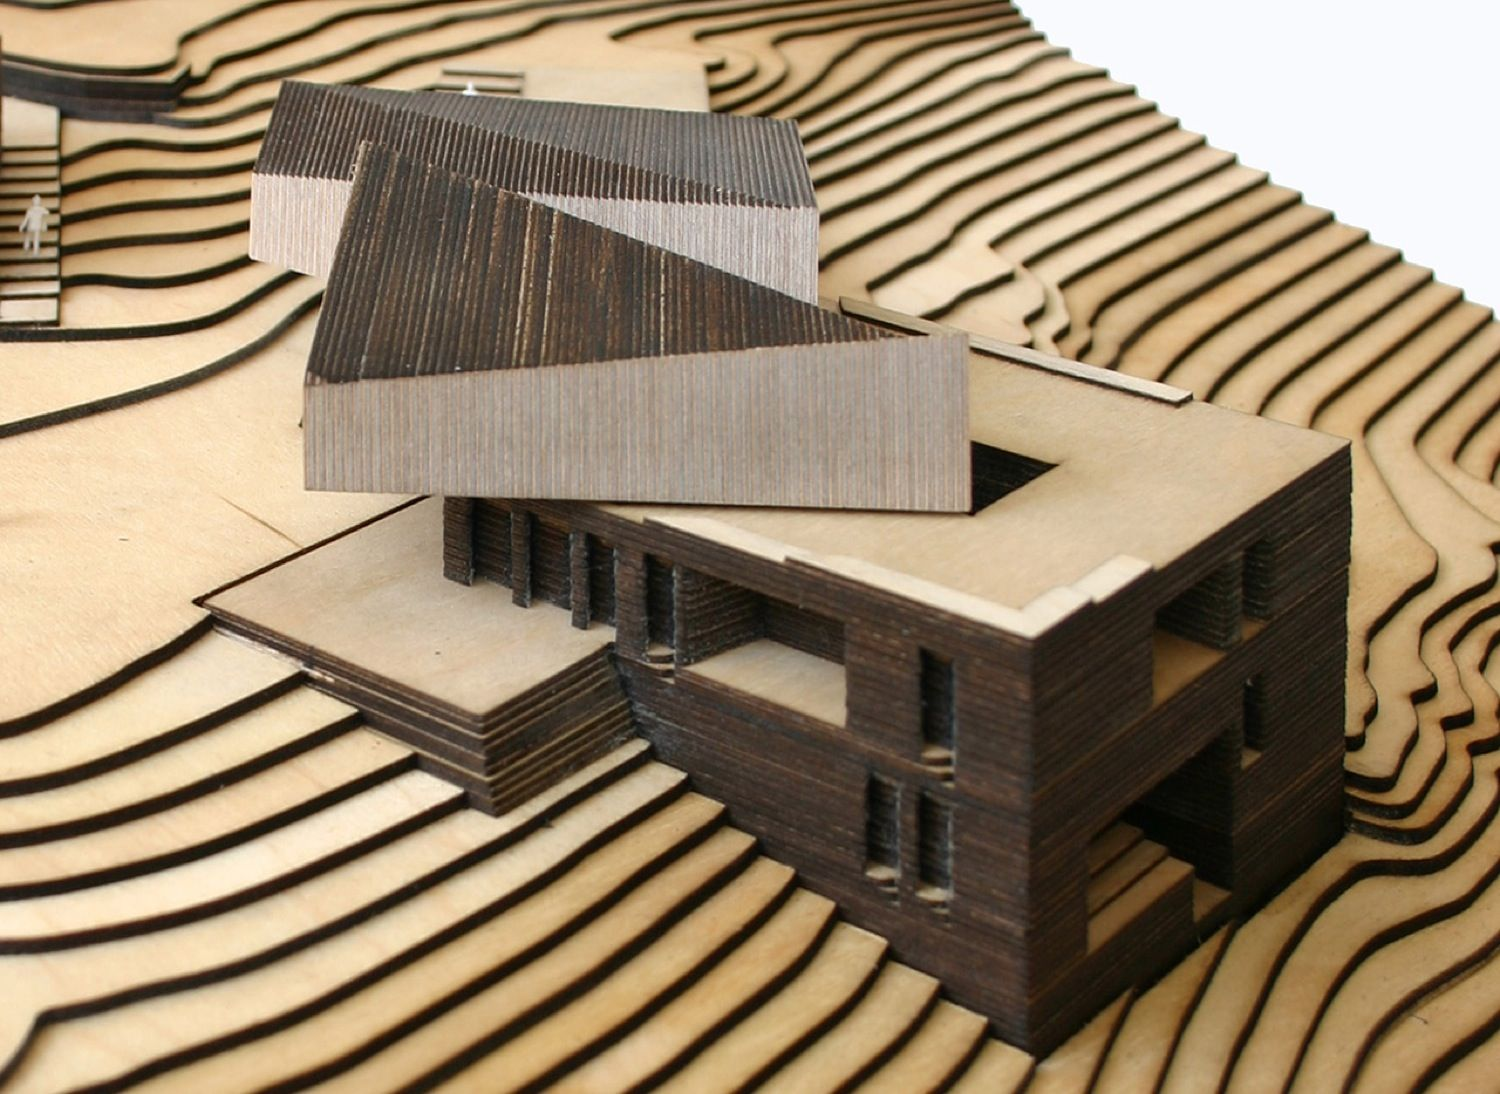 Pin on Architecture models